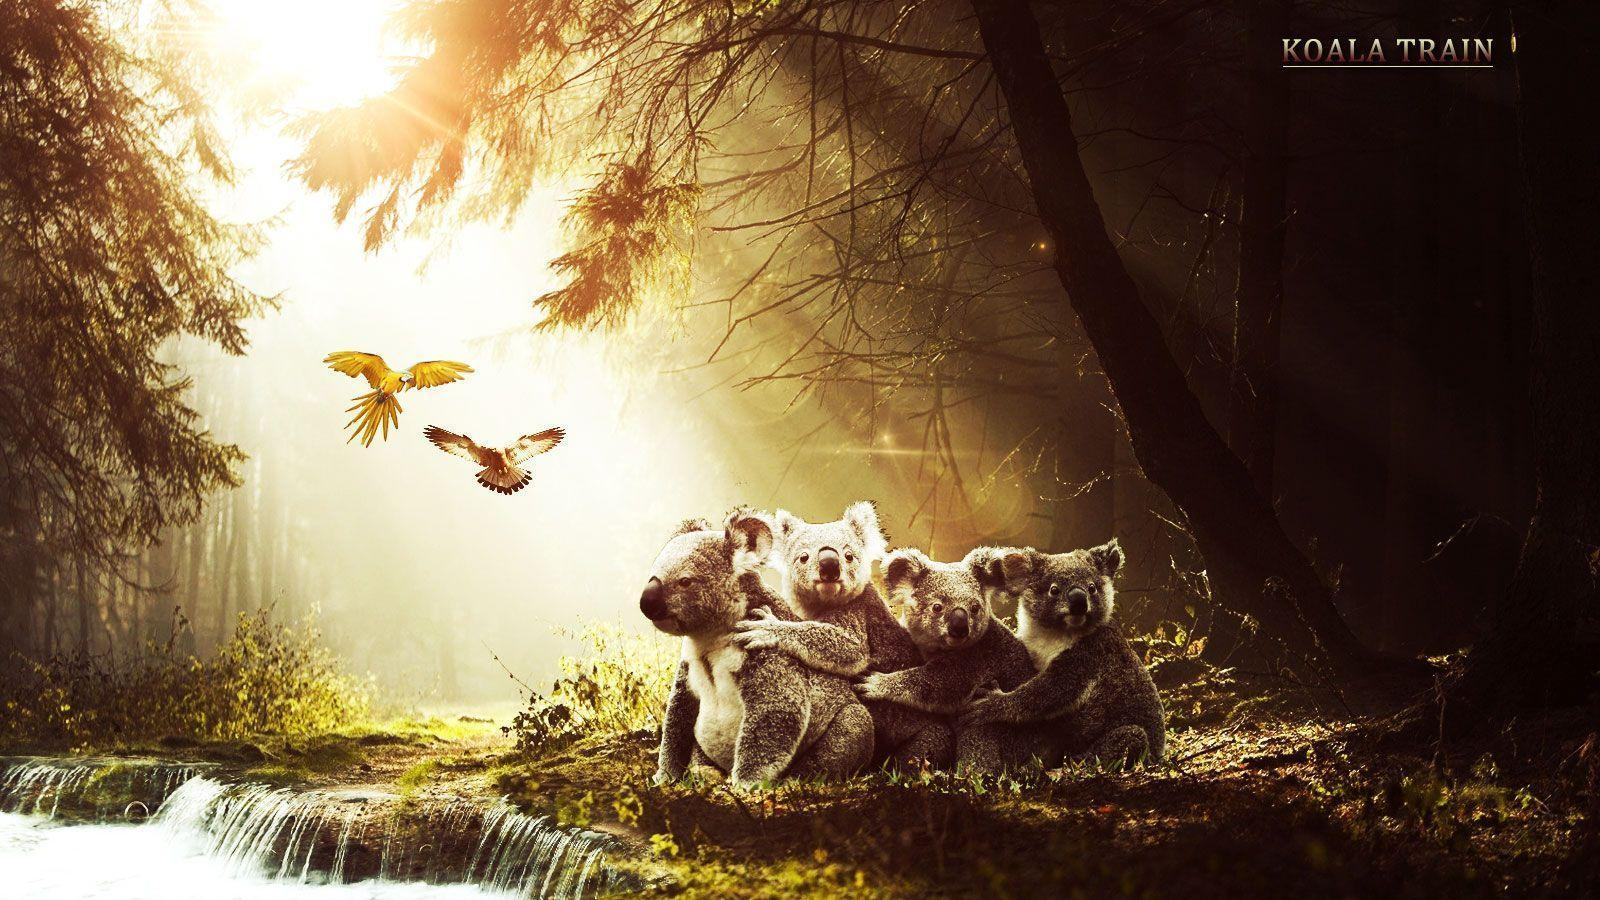 Free Wallpapers - Koalas In Forest 1600x900 wallpaper